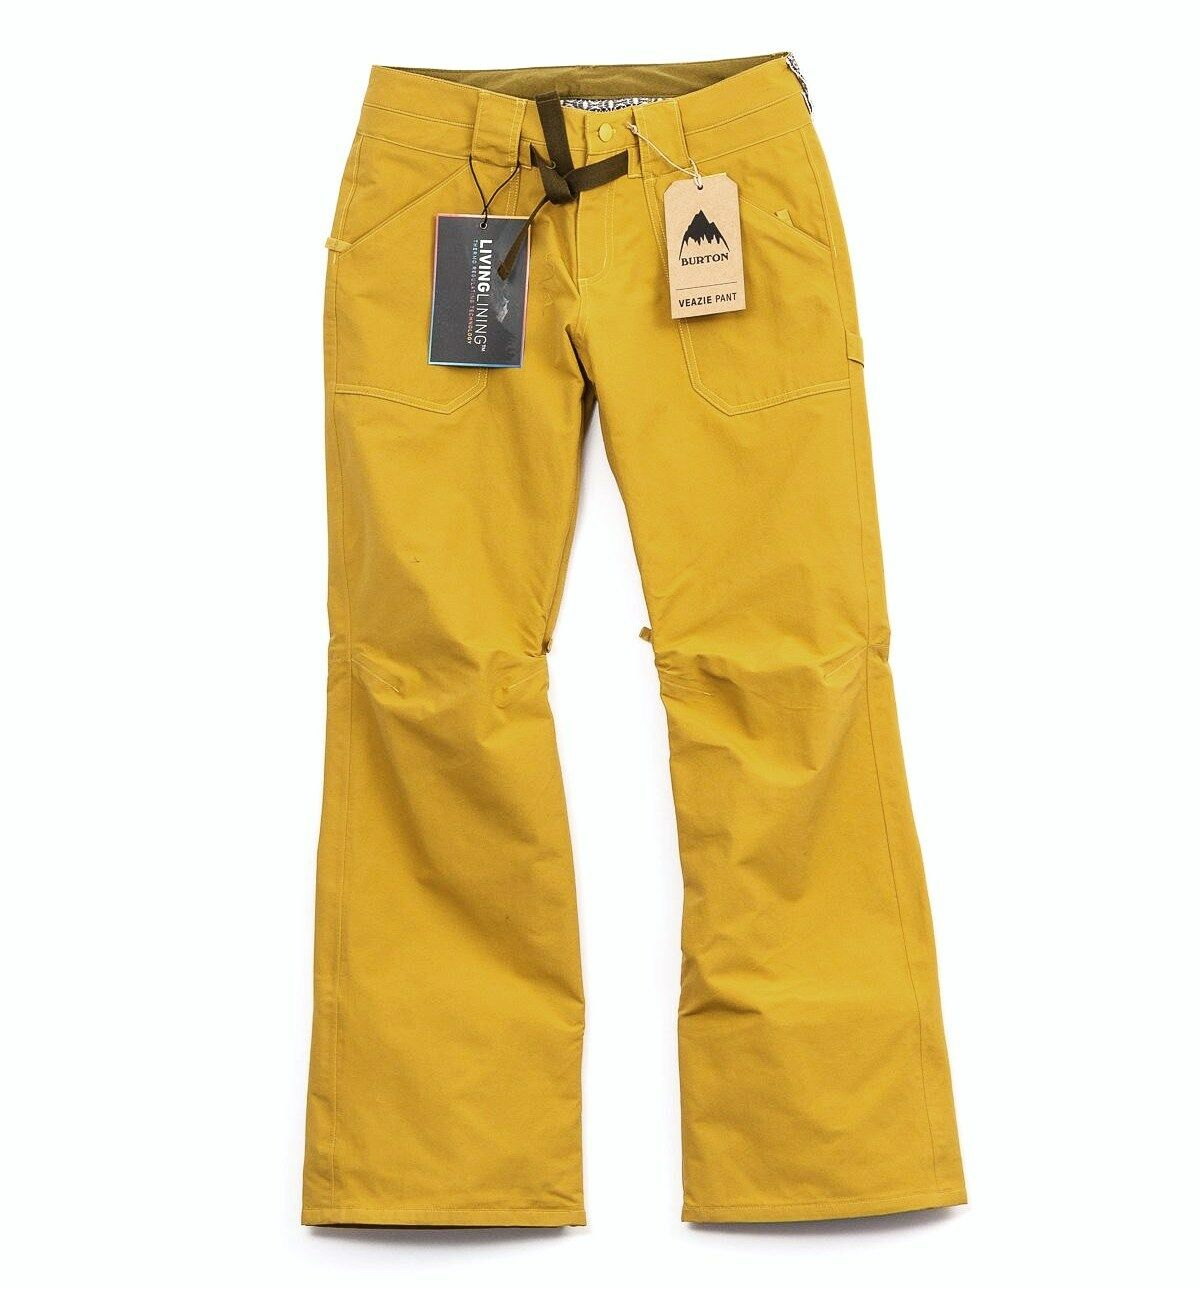 BURTON Women's VEAZIE Snow Pants - Harvest gold - Small - NWT